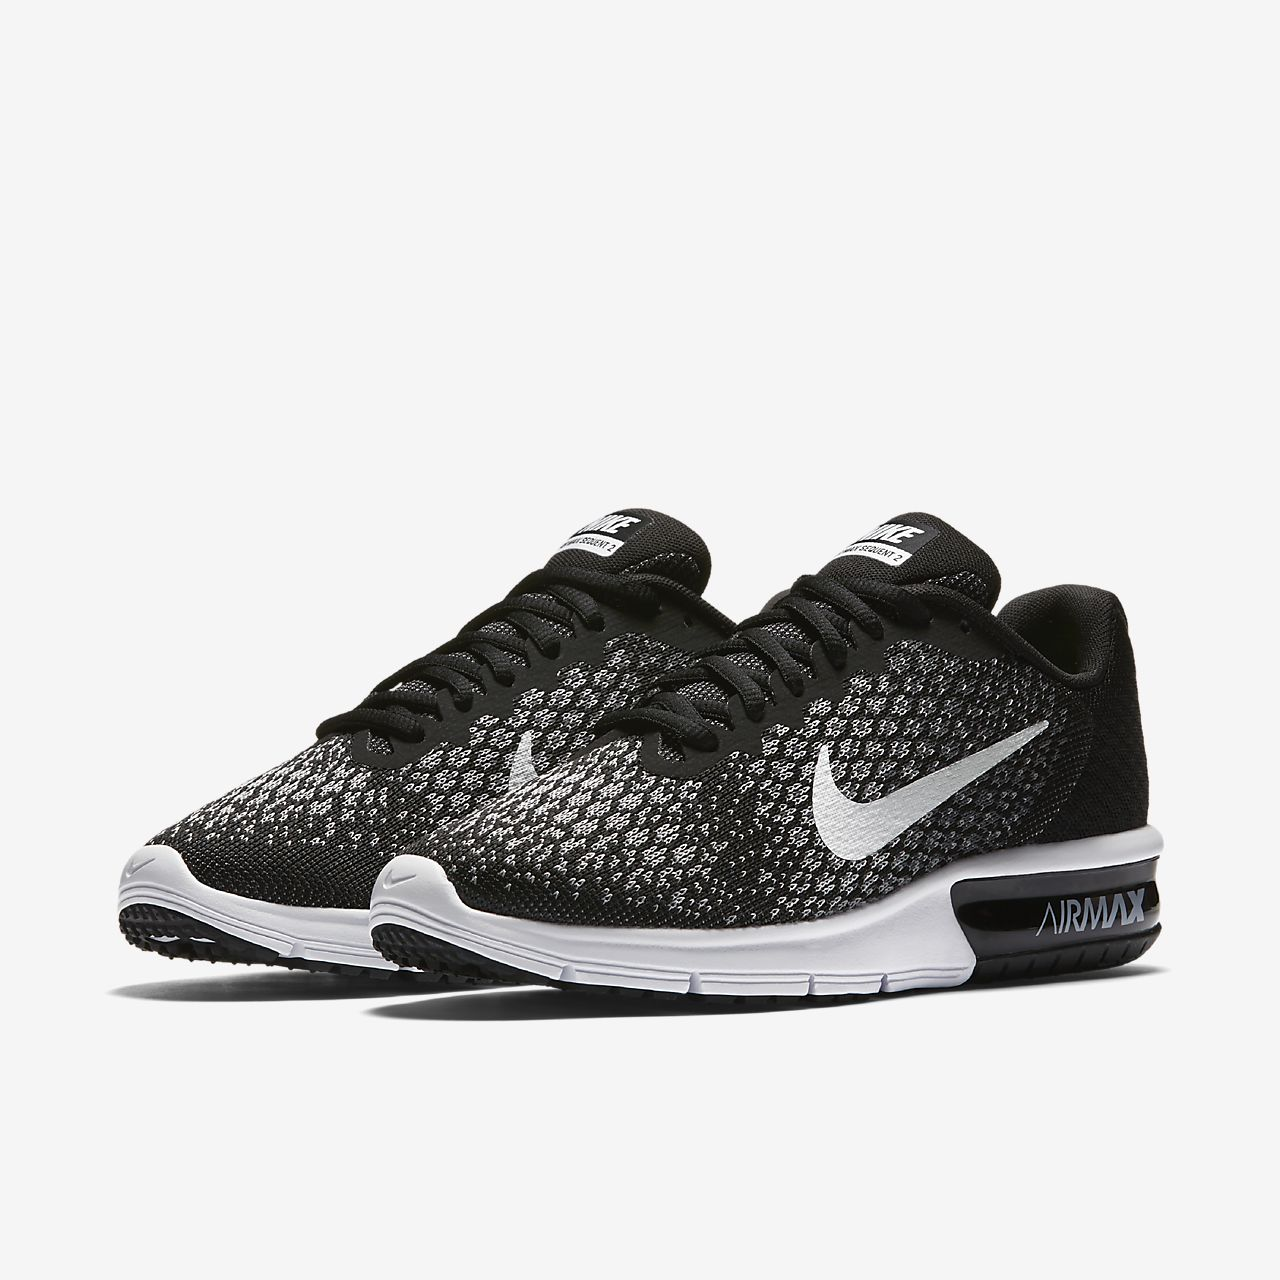 1a530cd955b7c5 Nike Air Max Sequent 2 Women s Shoe. Nike.com BG